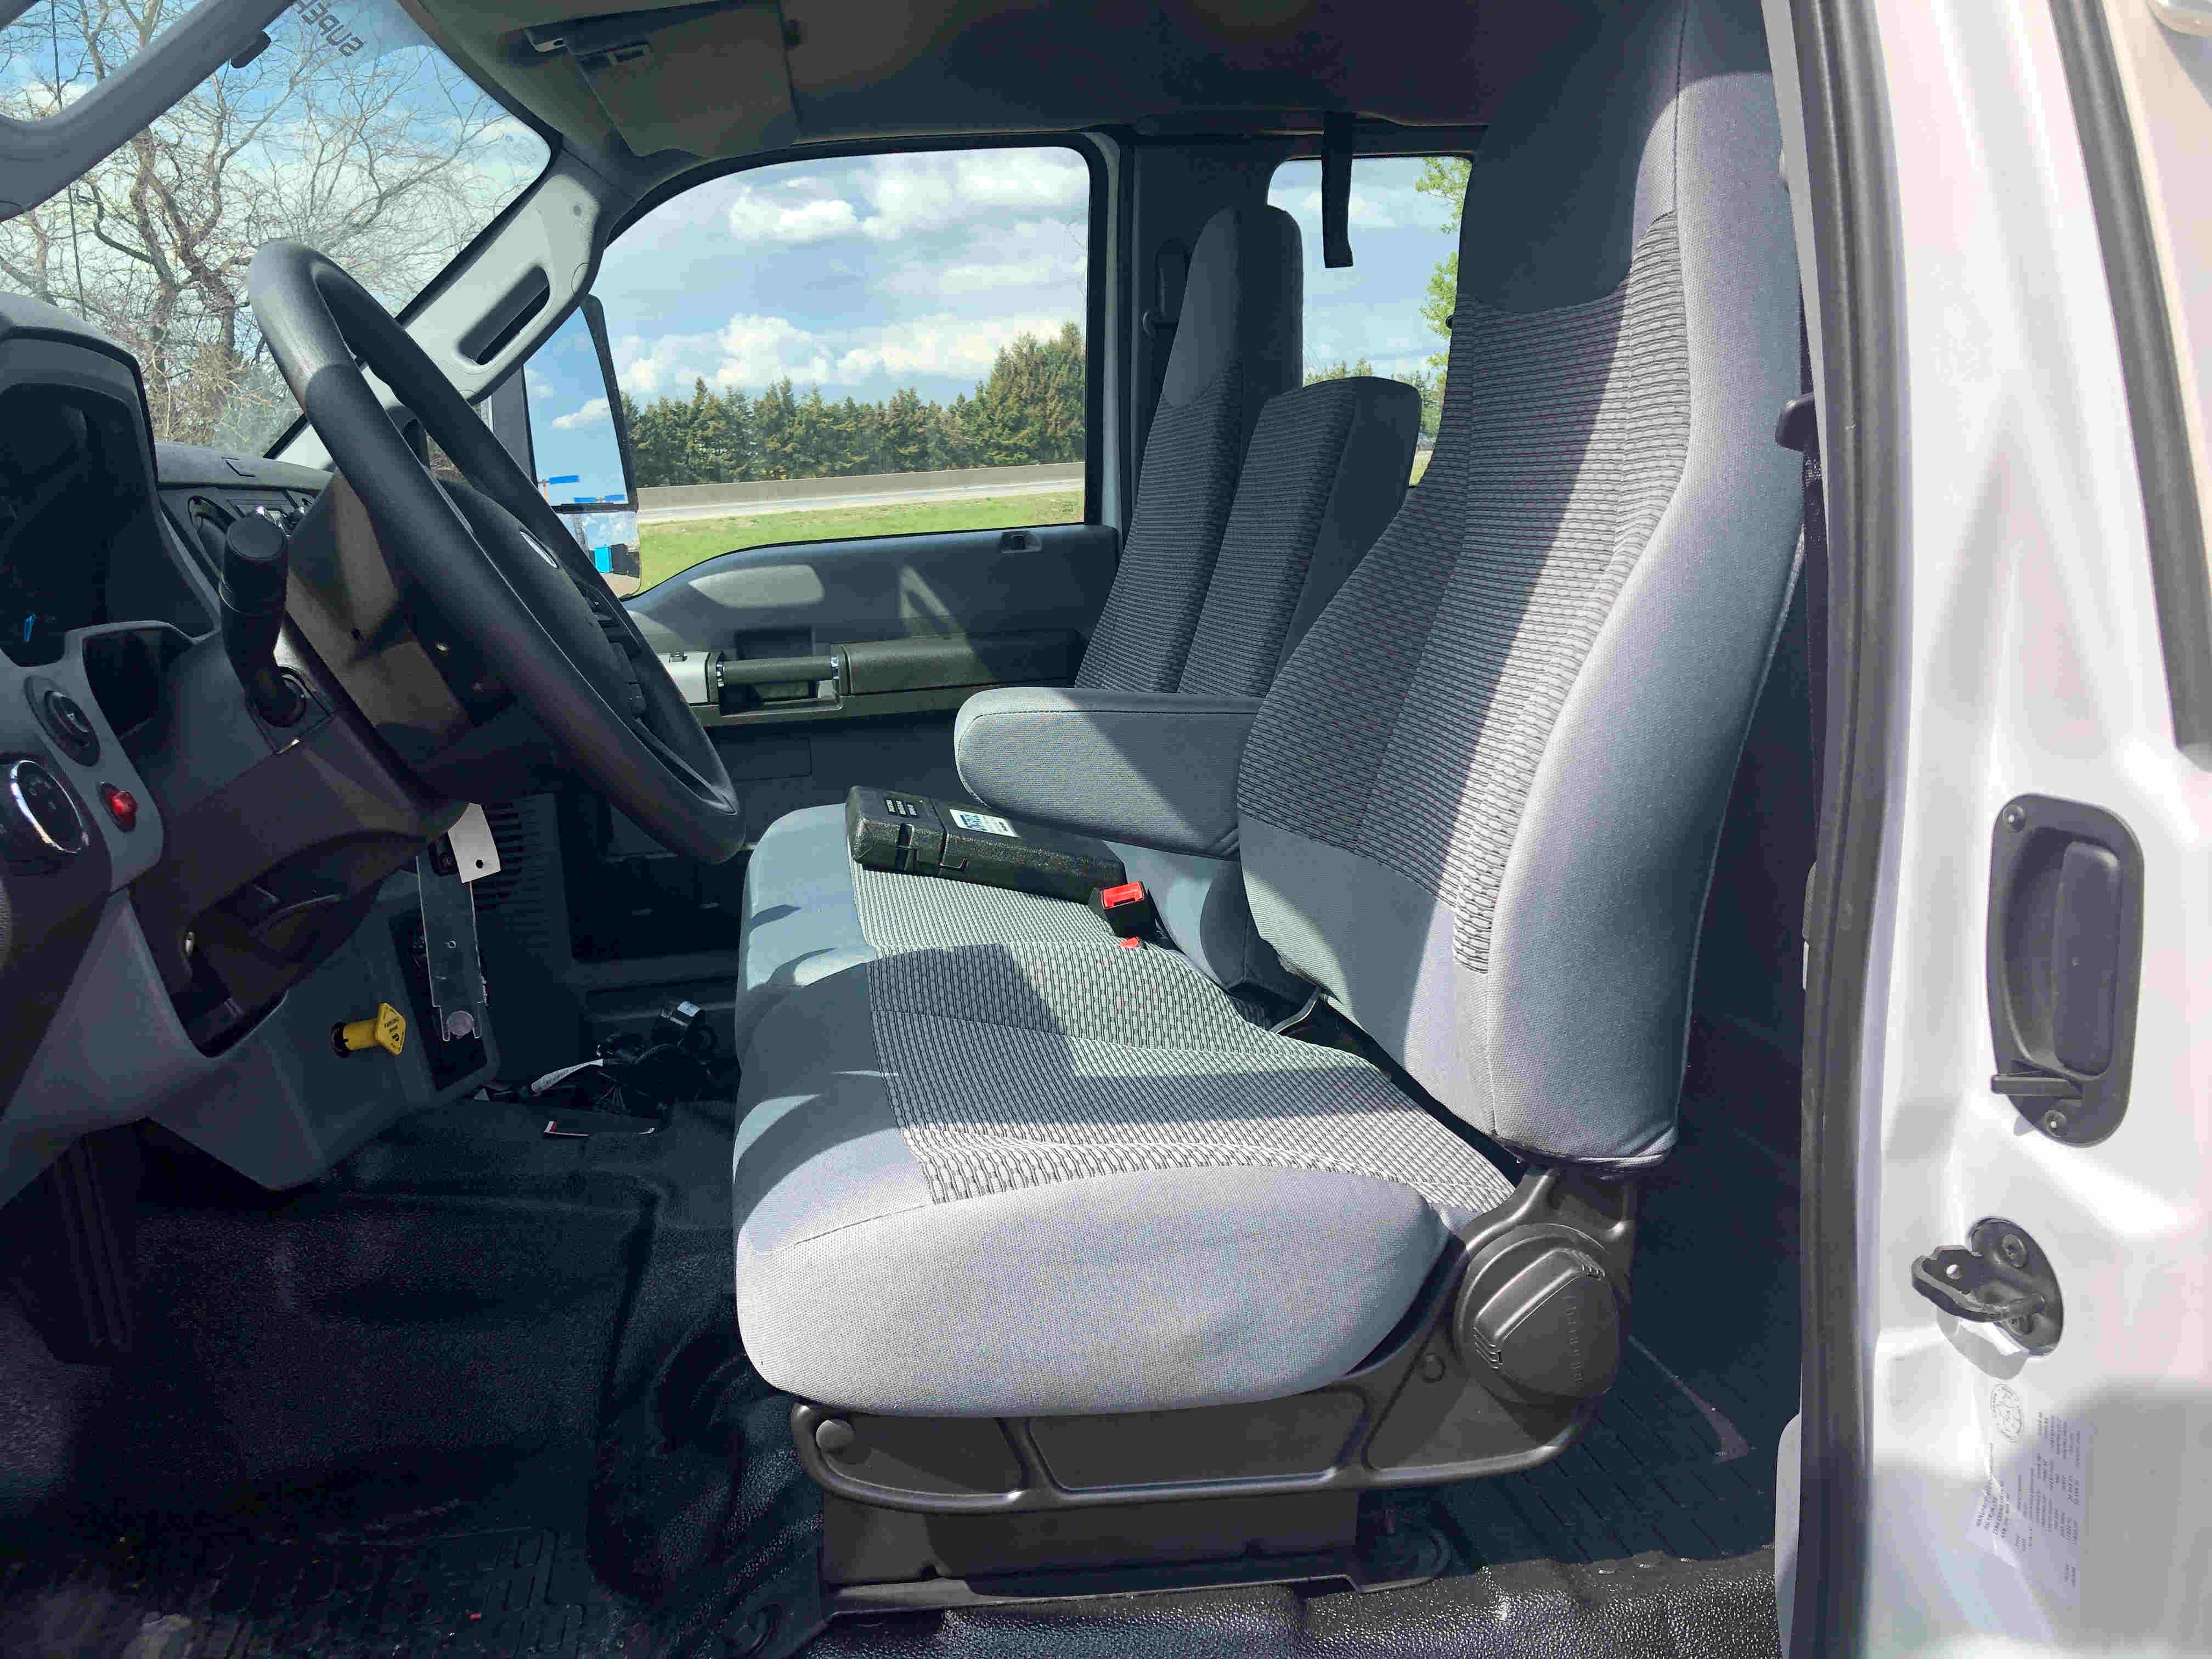 2021 Ford F750 12 On Trux System White (15)